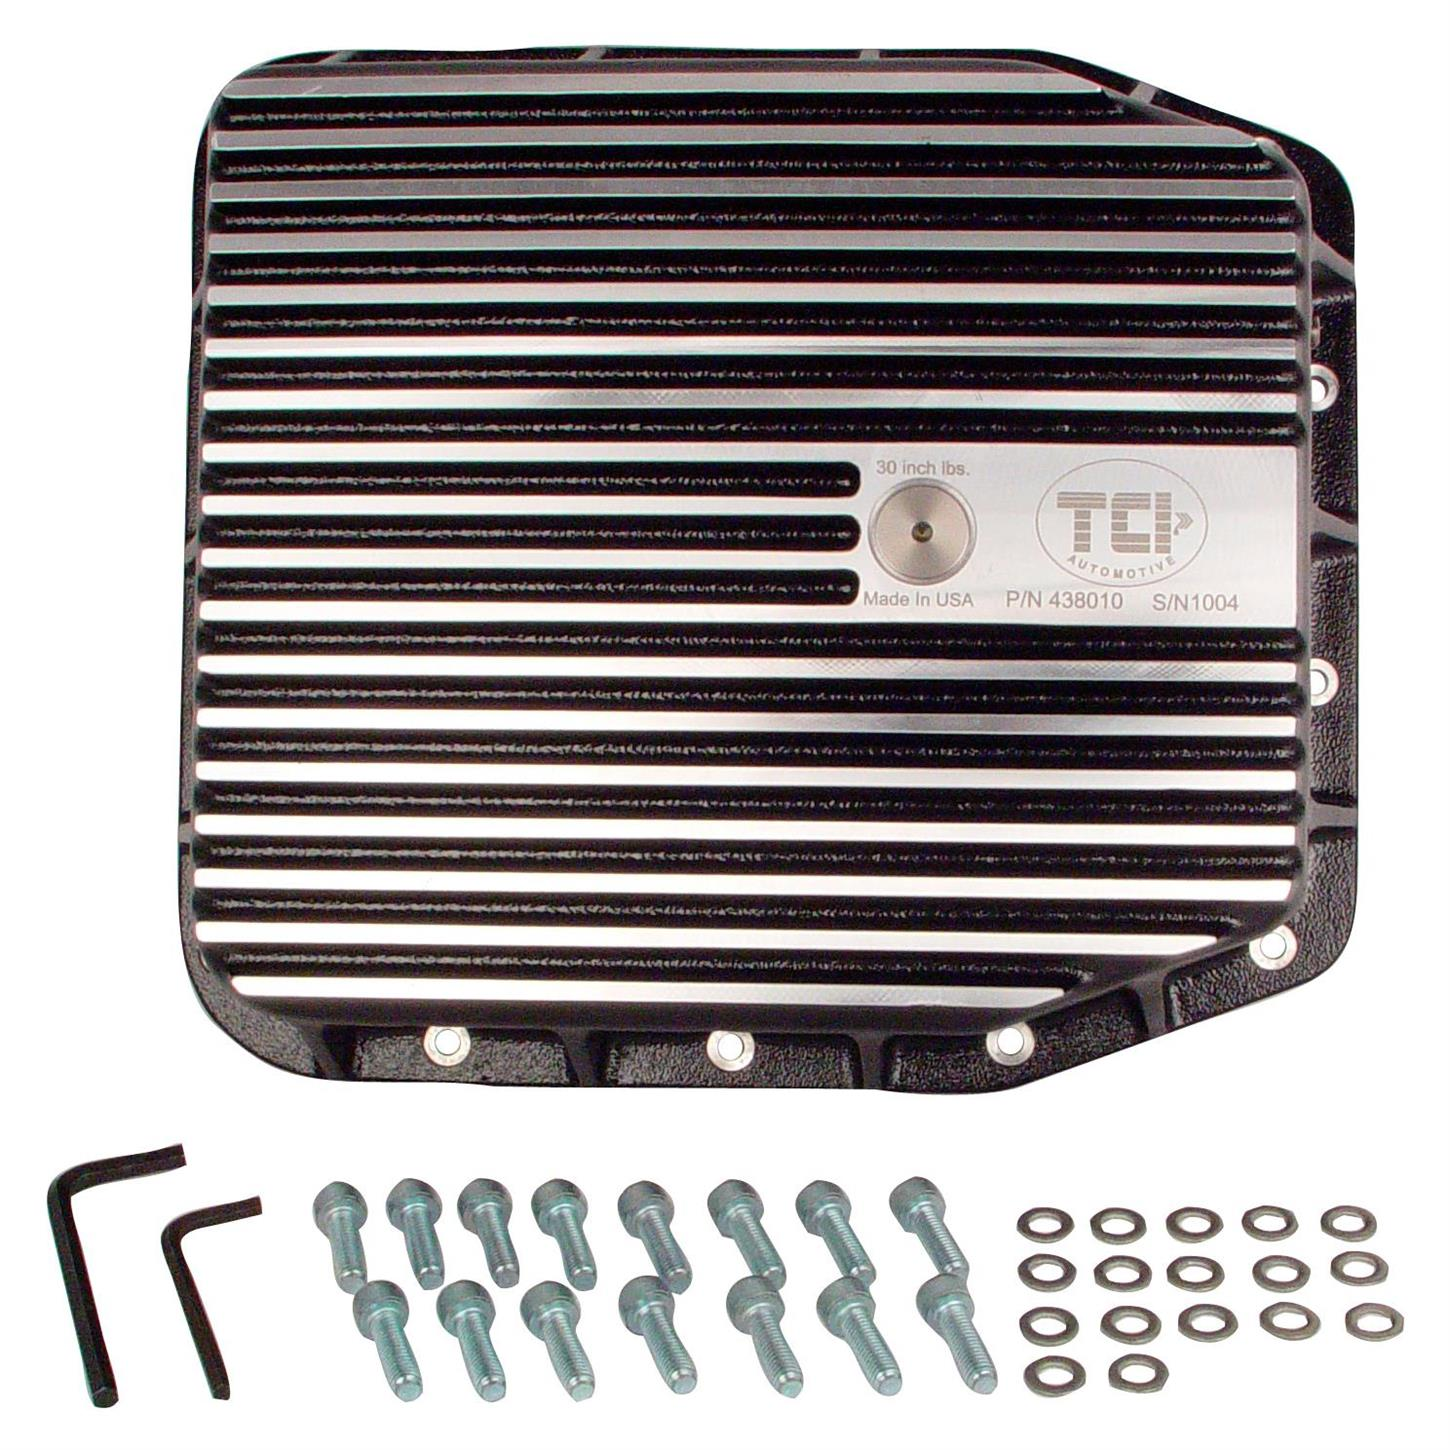 Tci 438010 Ford Aode 4r70w Maxcool Pan 1 2 Extra Quarts Aod Transmission Cooler Lines